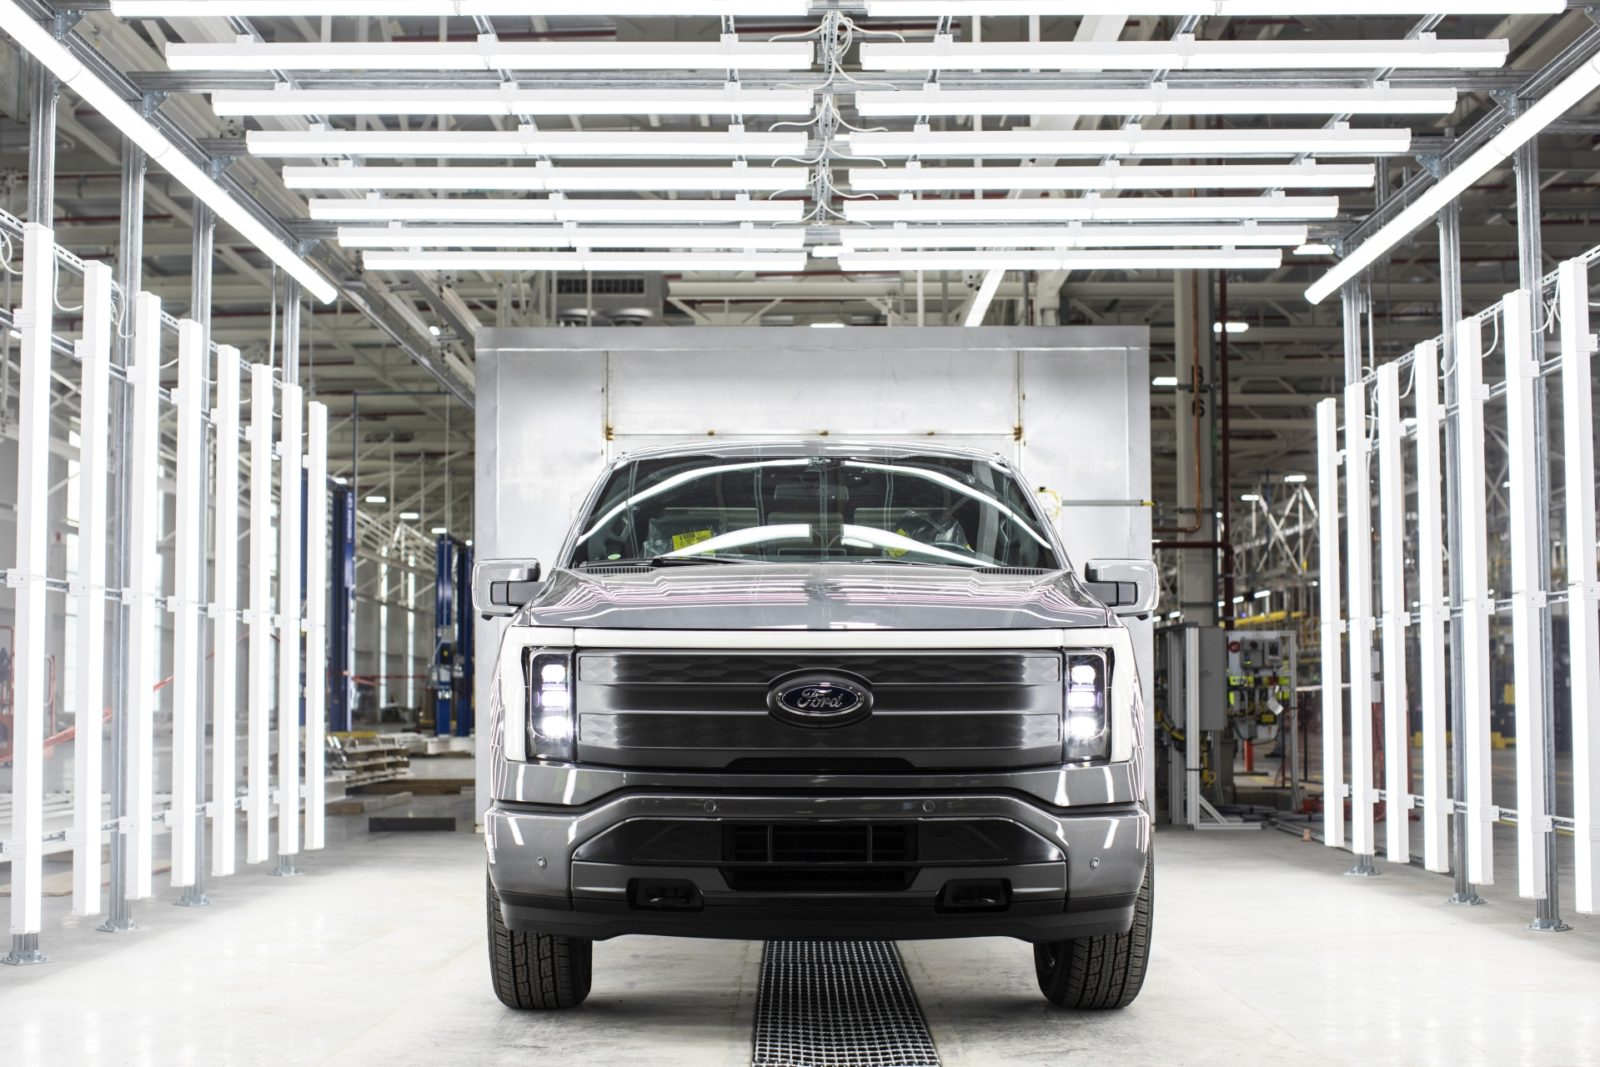 ford-seeing-the-light-at-the-end-of-the-chip-tunnel,-no-miracle-happening-overnight